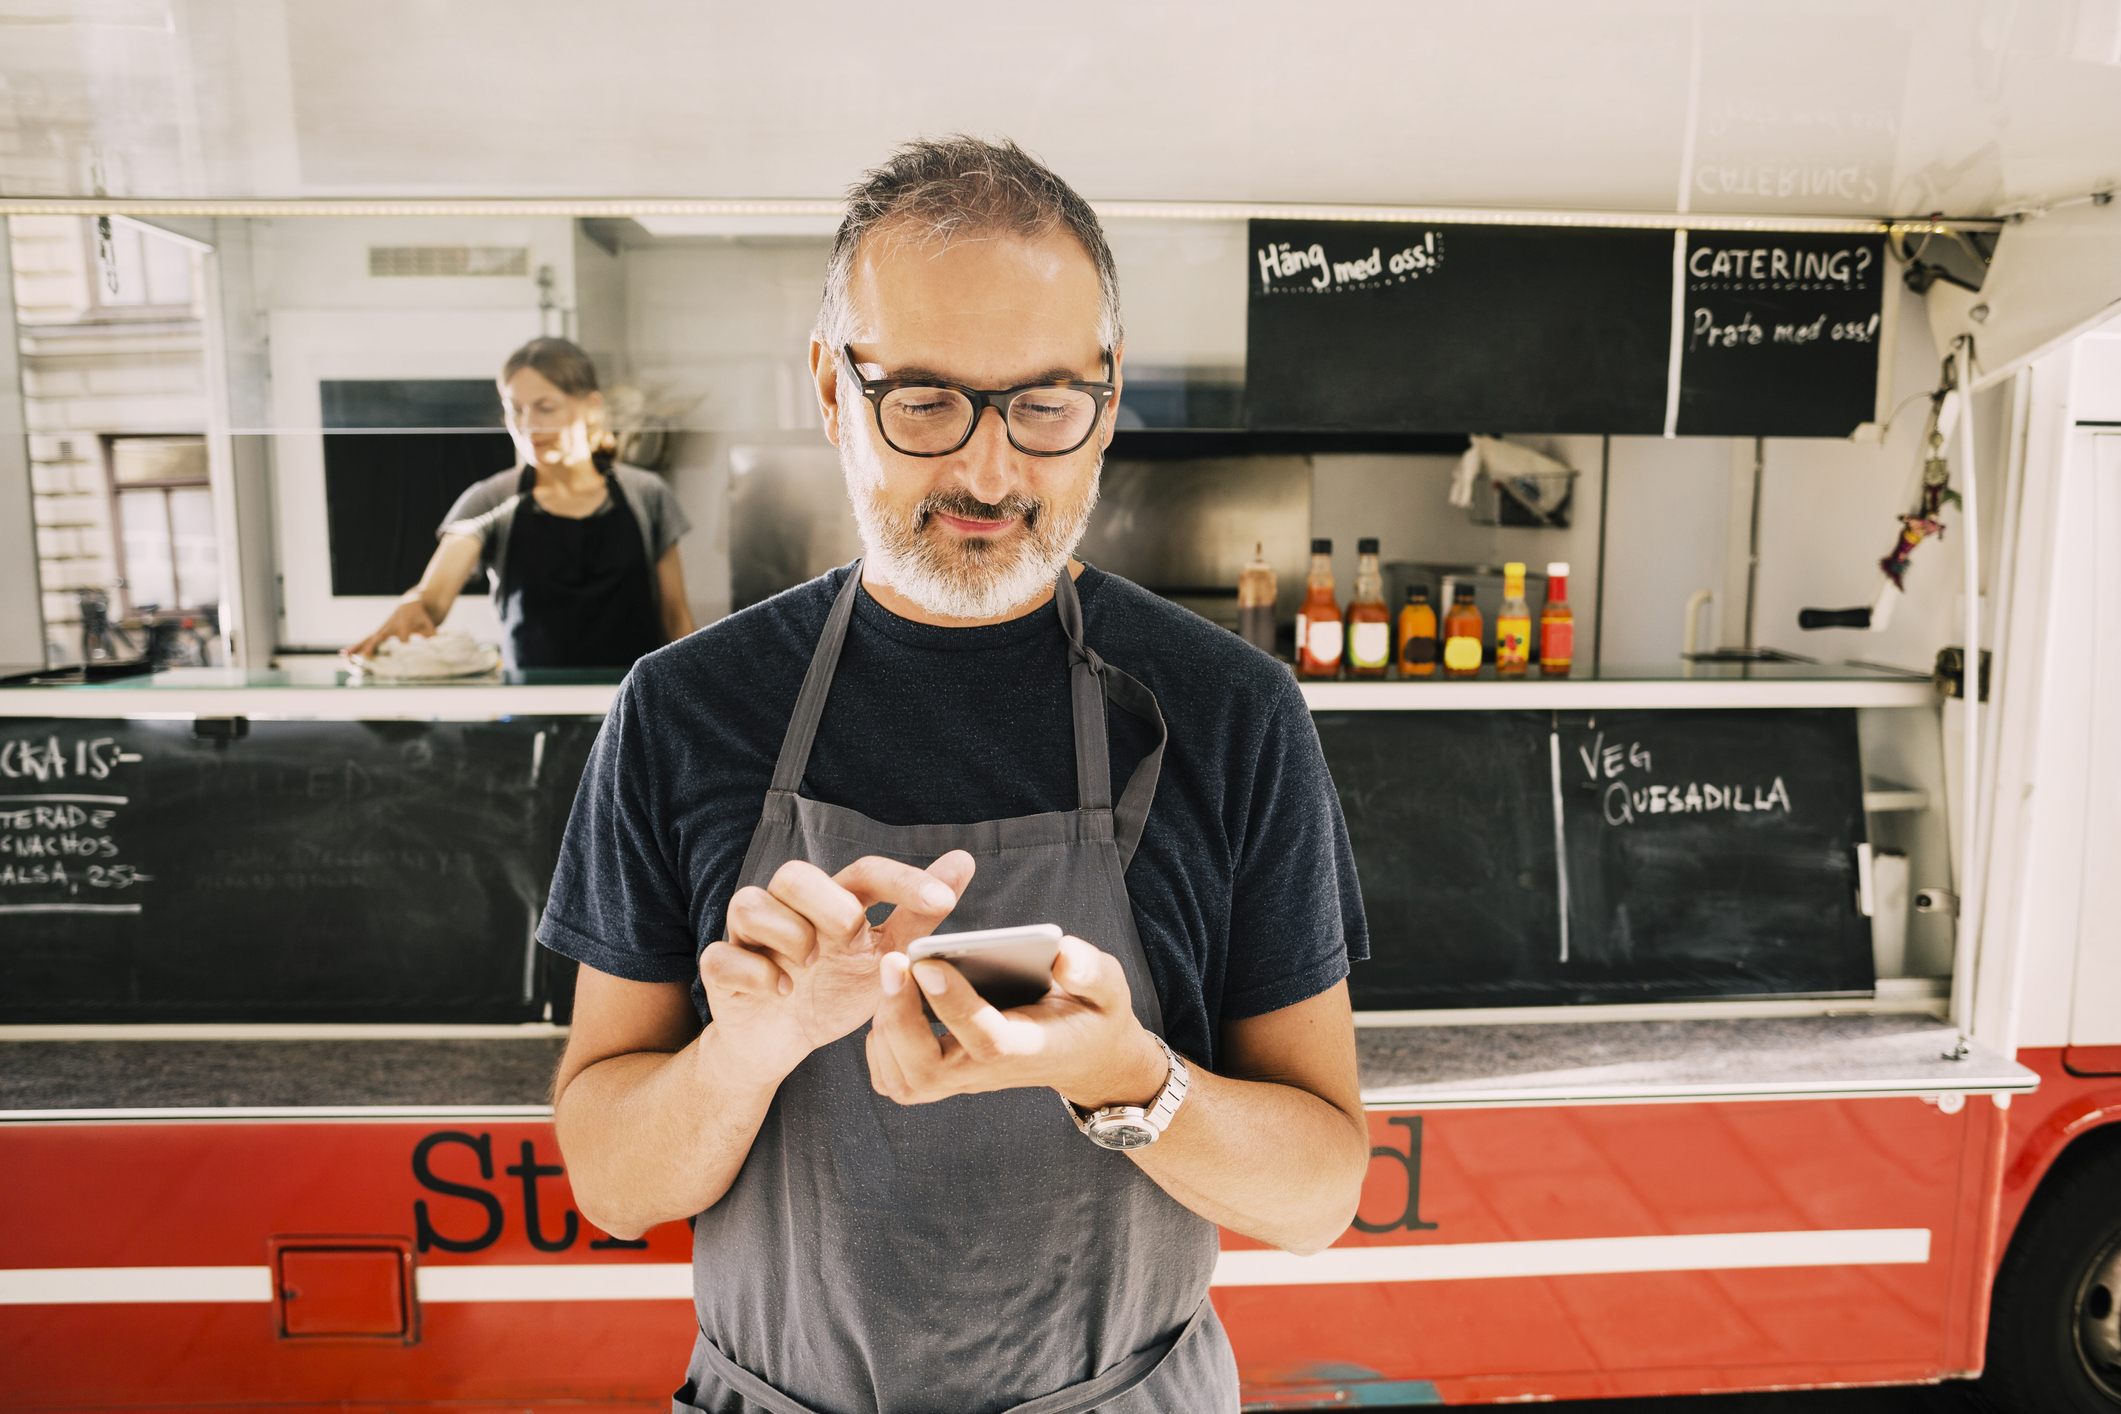 Man uses mobile POS system outside of food truck